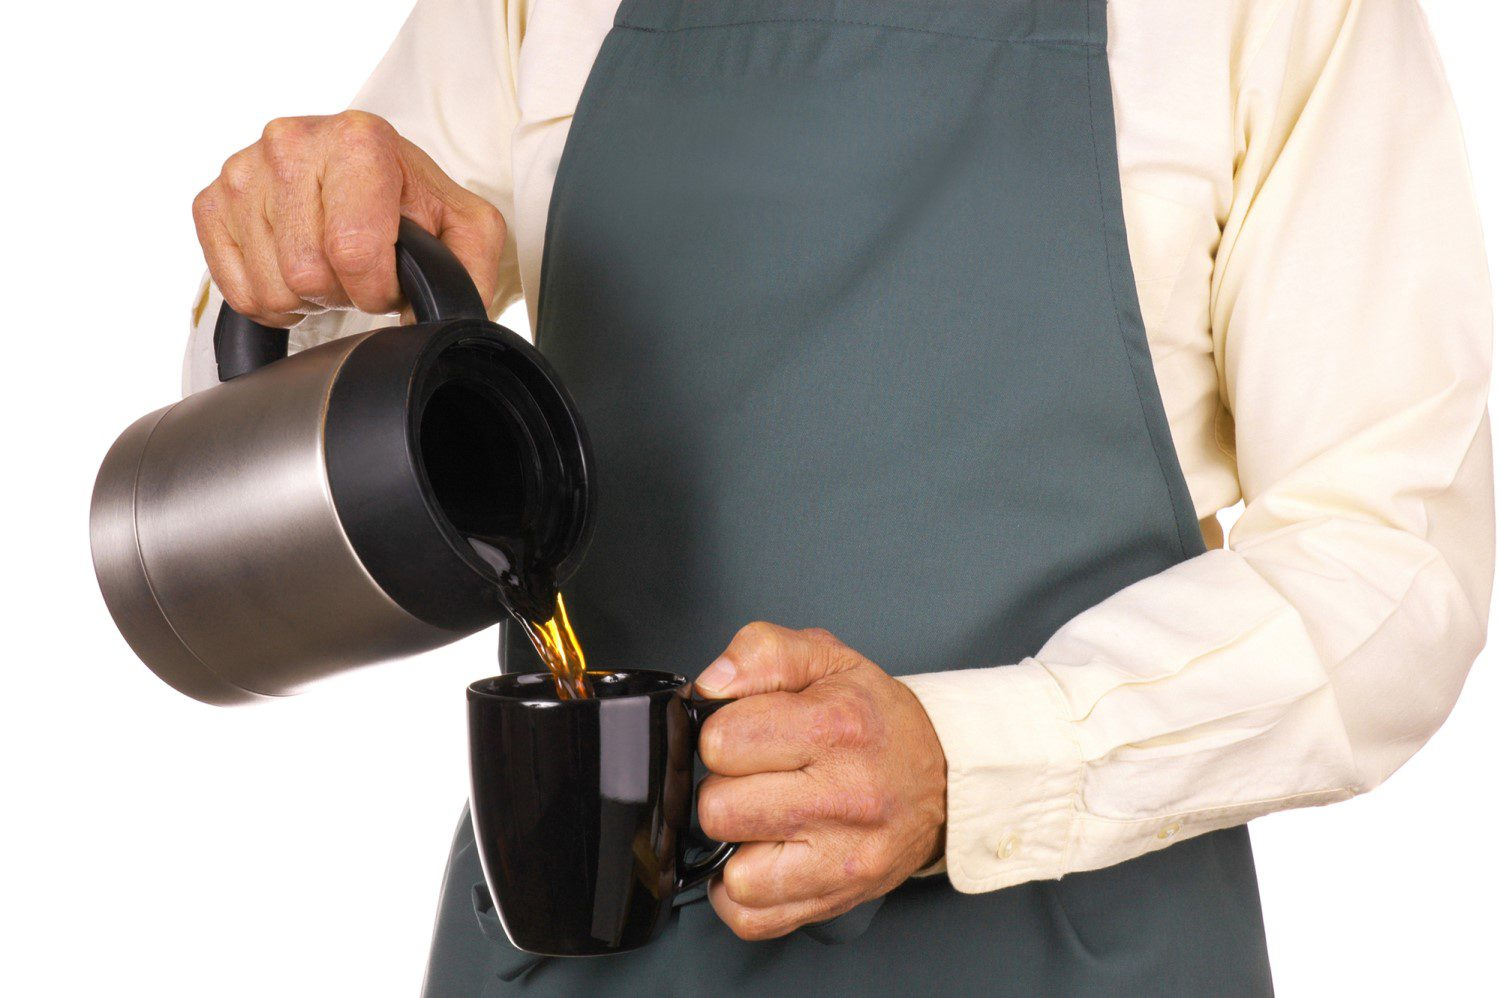 Man pouring a hot cup of coffee from a thermal carafe into a black mug